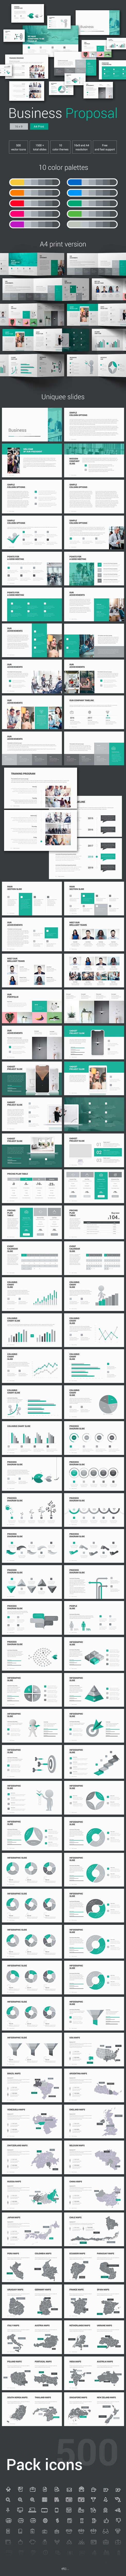 Business Proposal Pitch Powerpoint Template - Business PowerPoint Templates